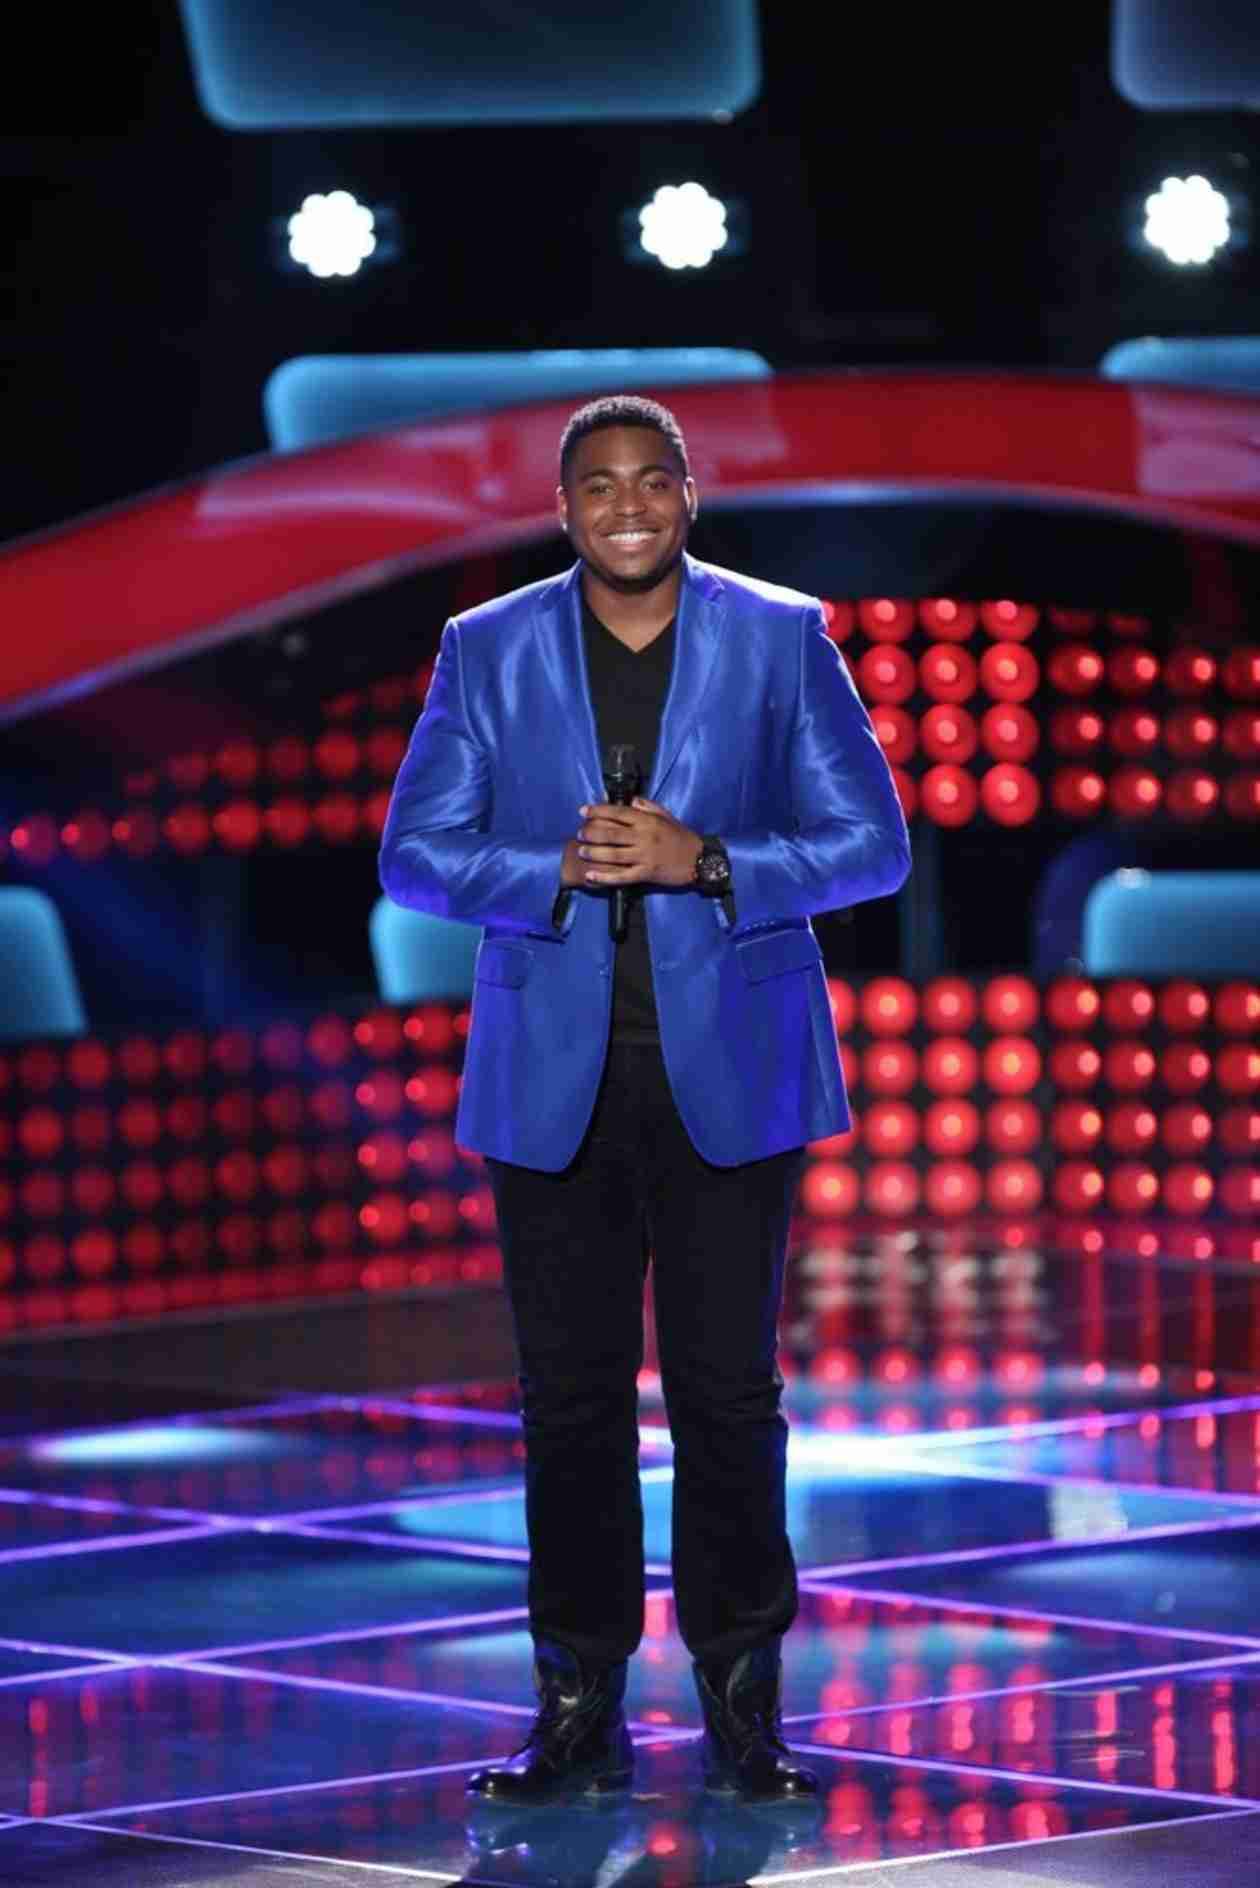 Watch T.J. Wilkins Sing on The Voice 2014 Season 6 Blind Auditions February 24, 2014 (VIDEO)